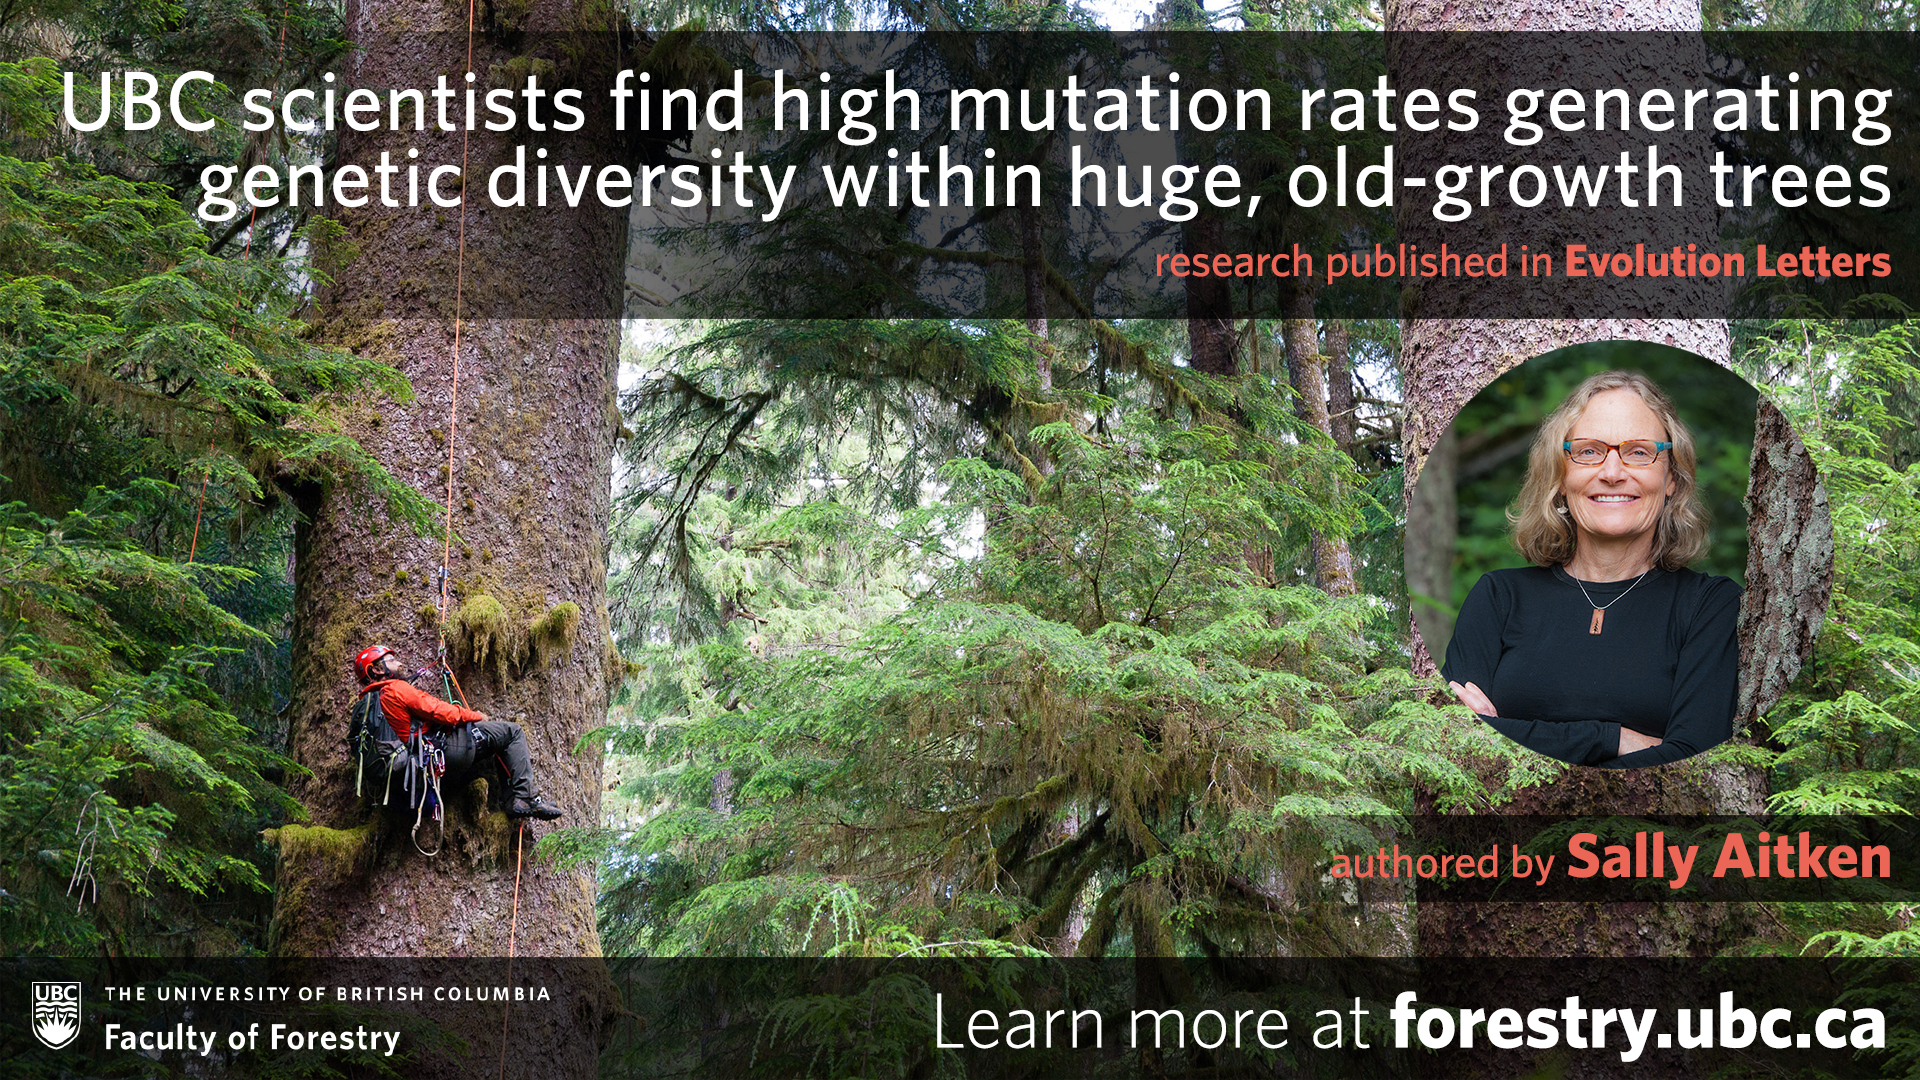 UBC Scientists Find High Mutation Rates Generating Genetic Diversity Within Huge, Old-growth Trees